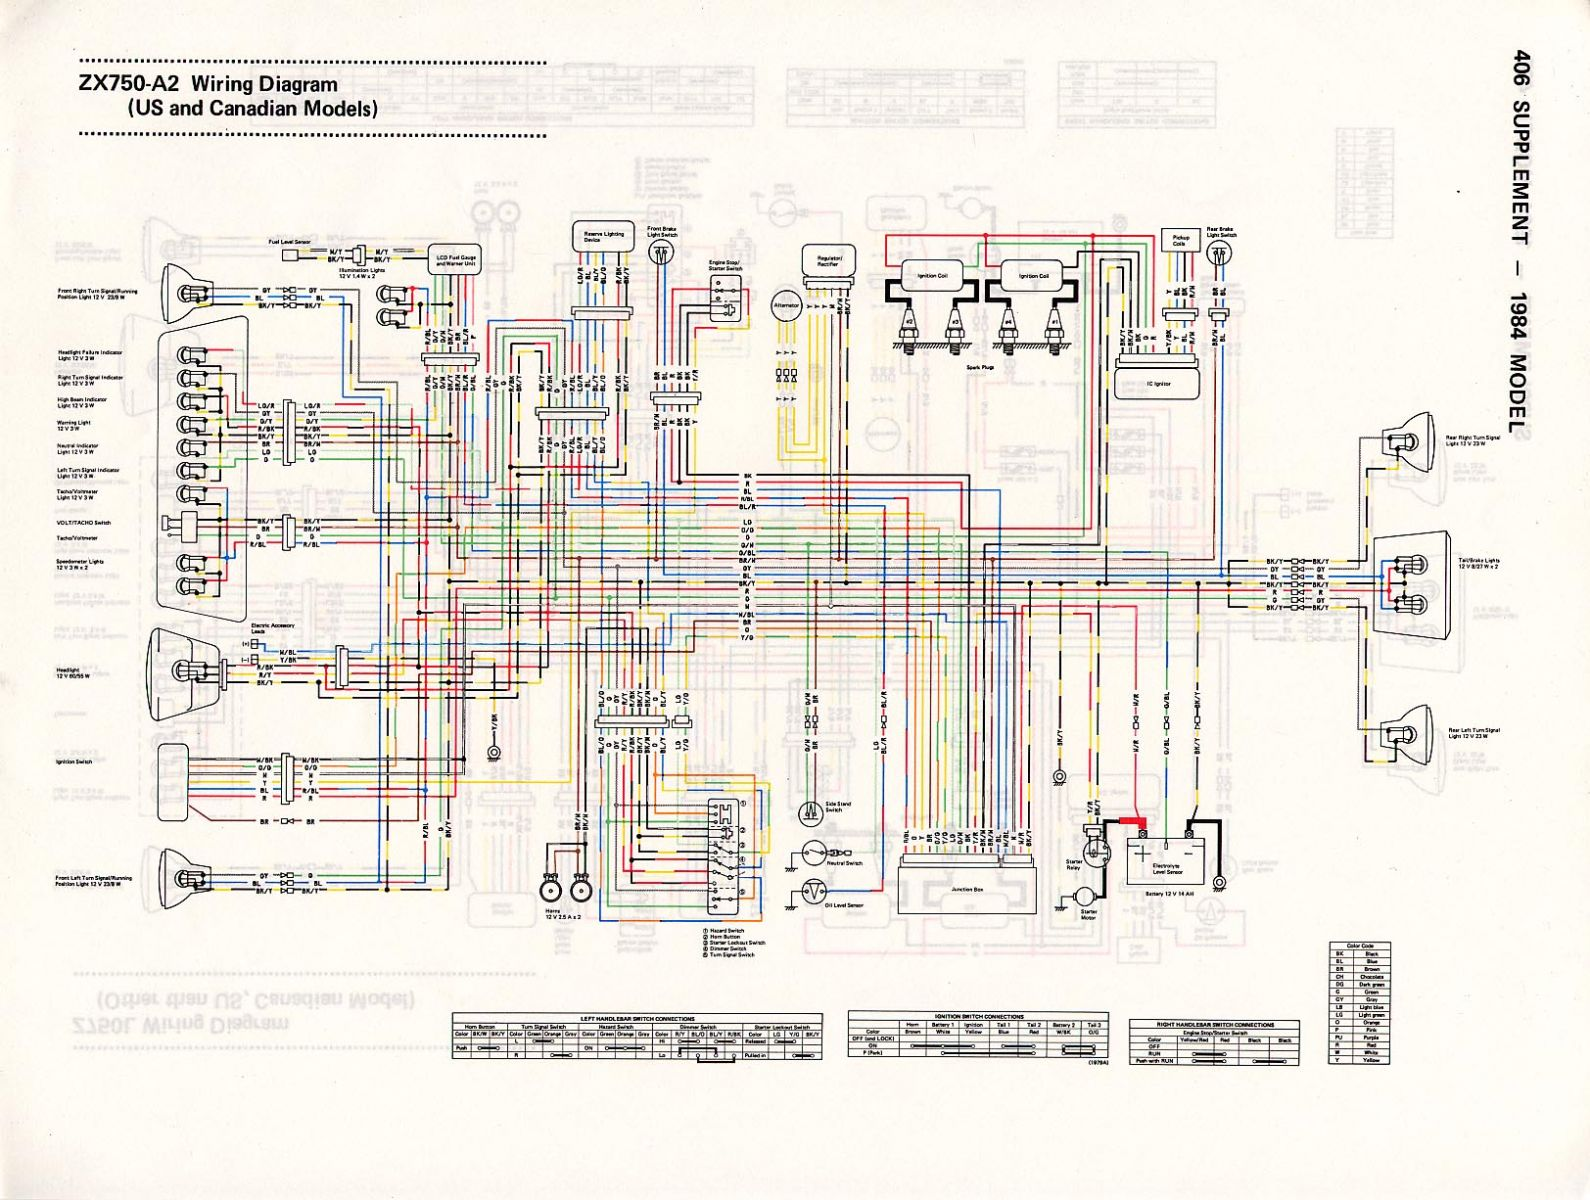 1982 Kawasaki Kz1300 Wiring Diagrams Complete Wiring Diagrams \u2022 1980  Kz1300 Wire Diagram